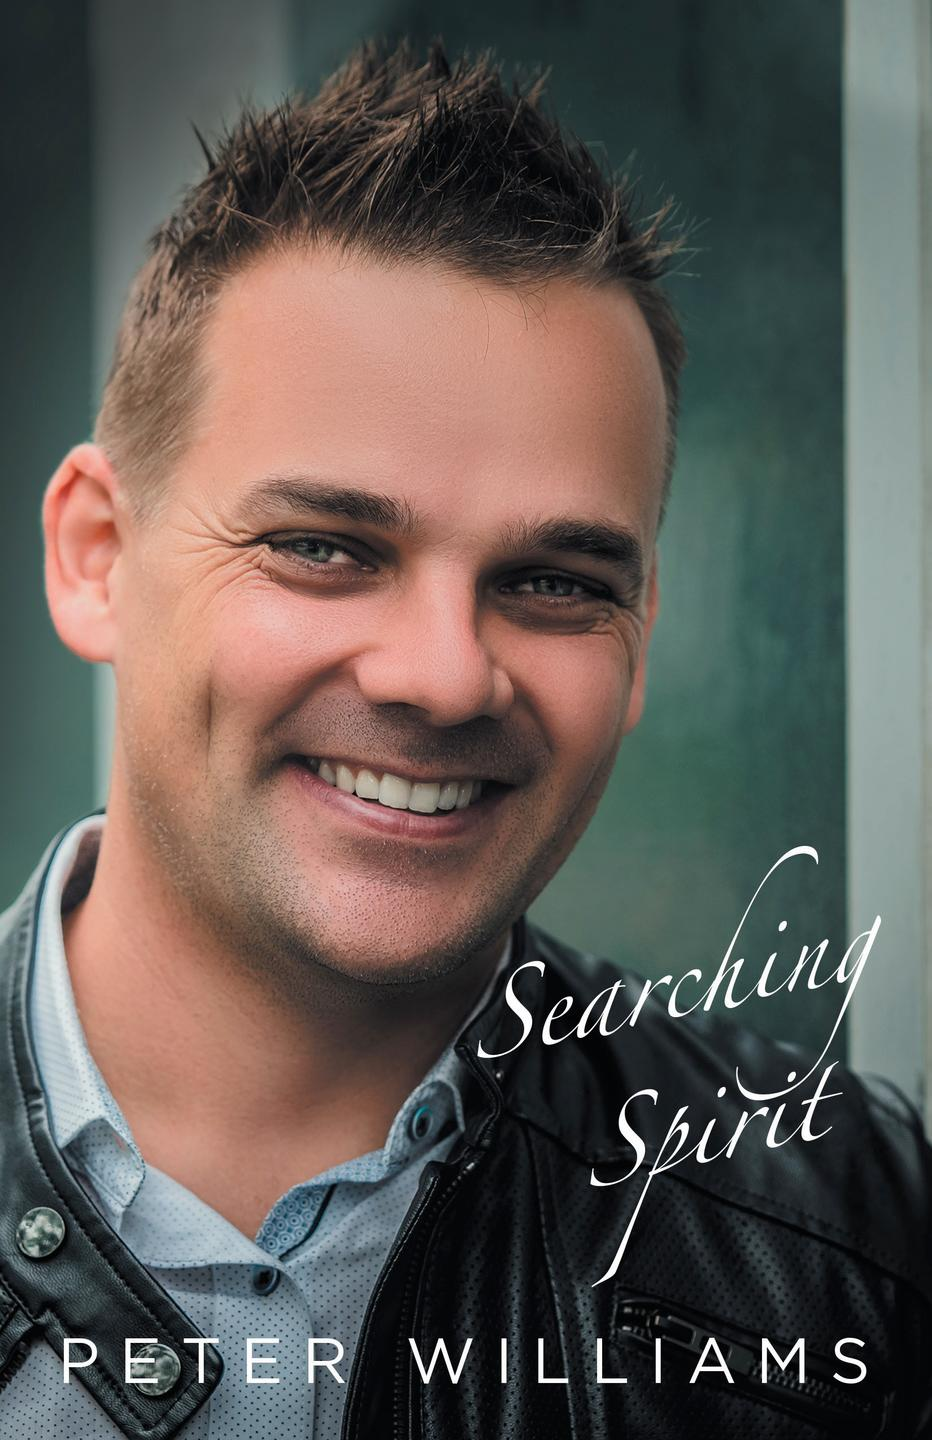 Searching Spirit Book Cover